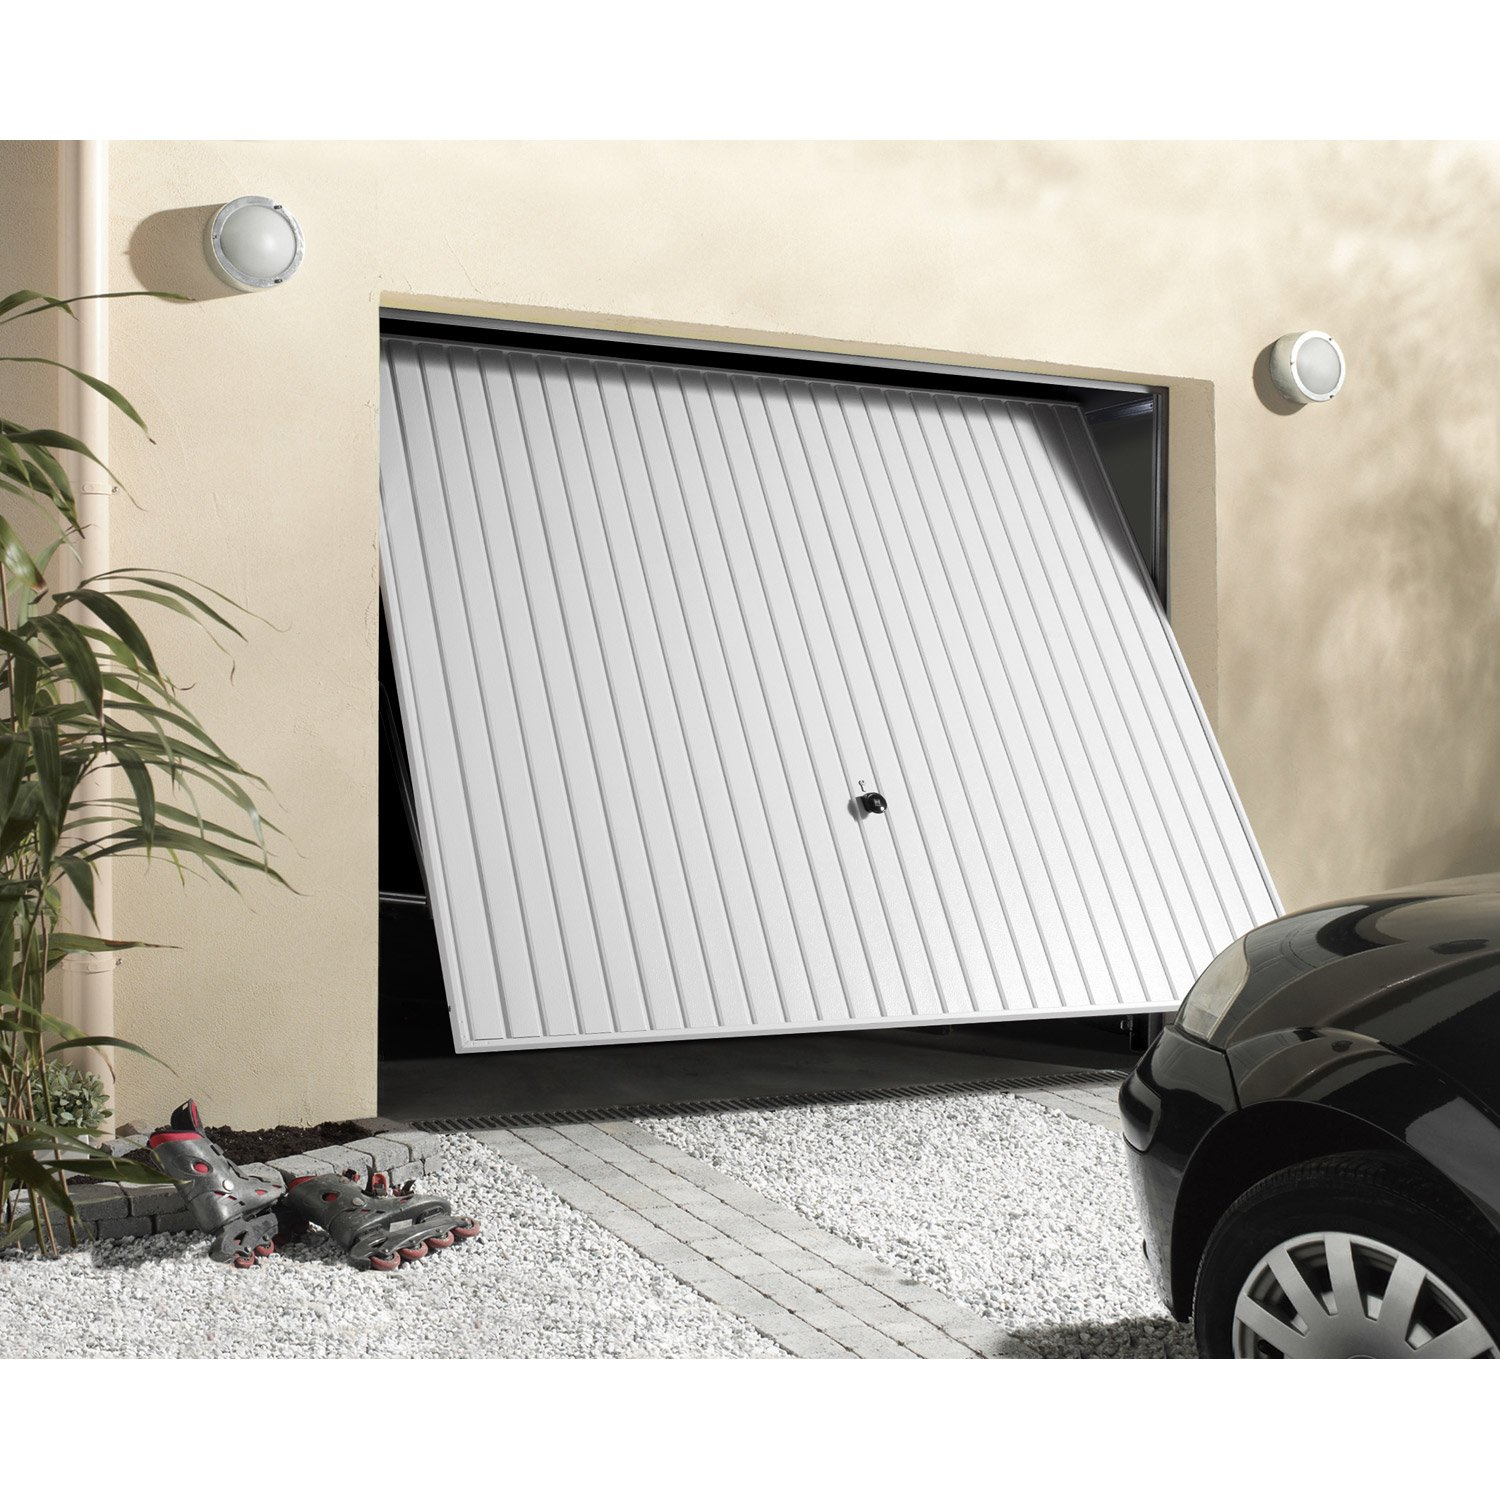 Porte de garage coulissante pas cher isolation id es for Isolation porte de garage weldom